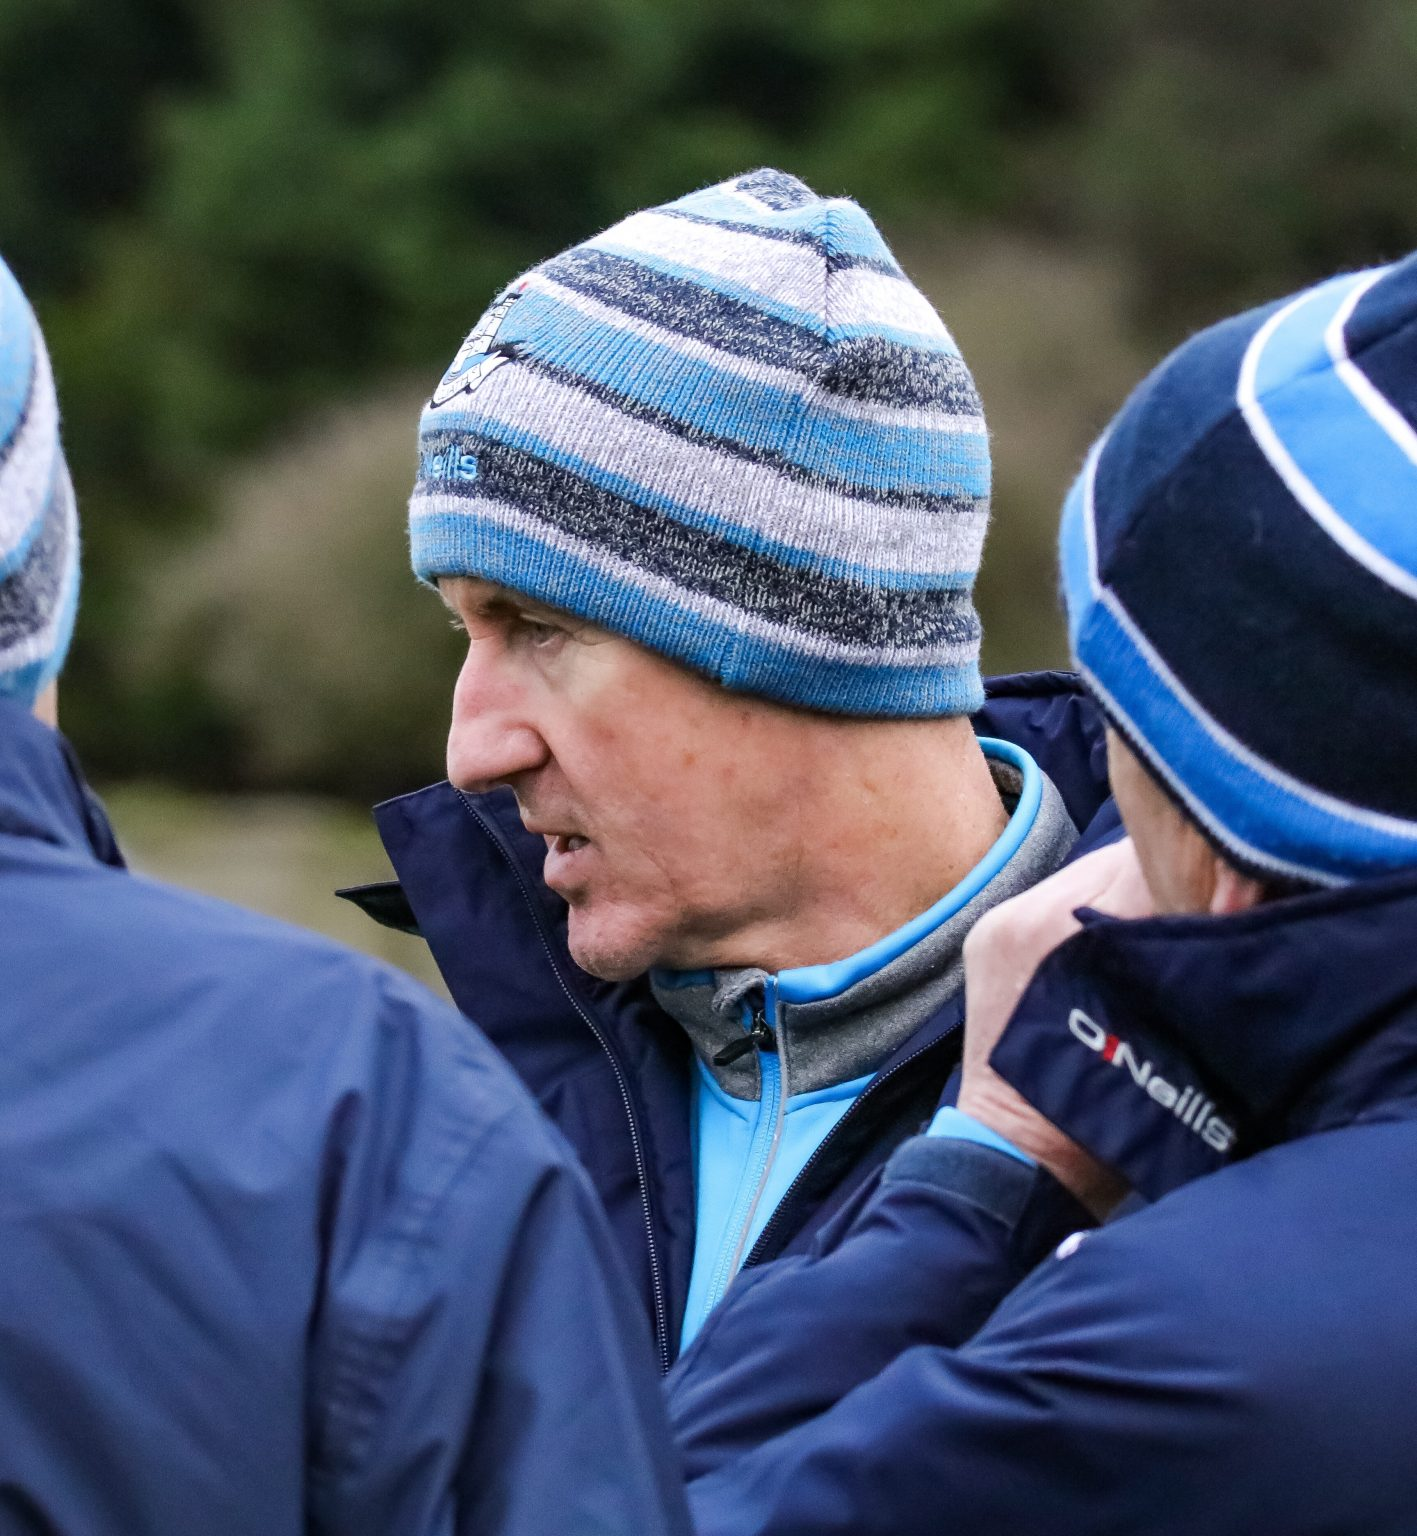 Paul Clarke Believes Inexperience Cost His Dublin Side Against Wexford